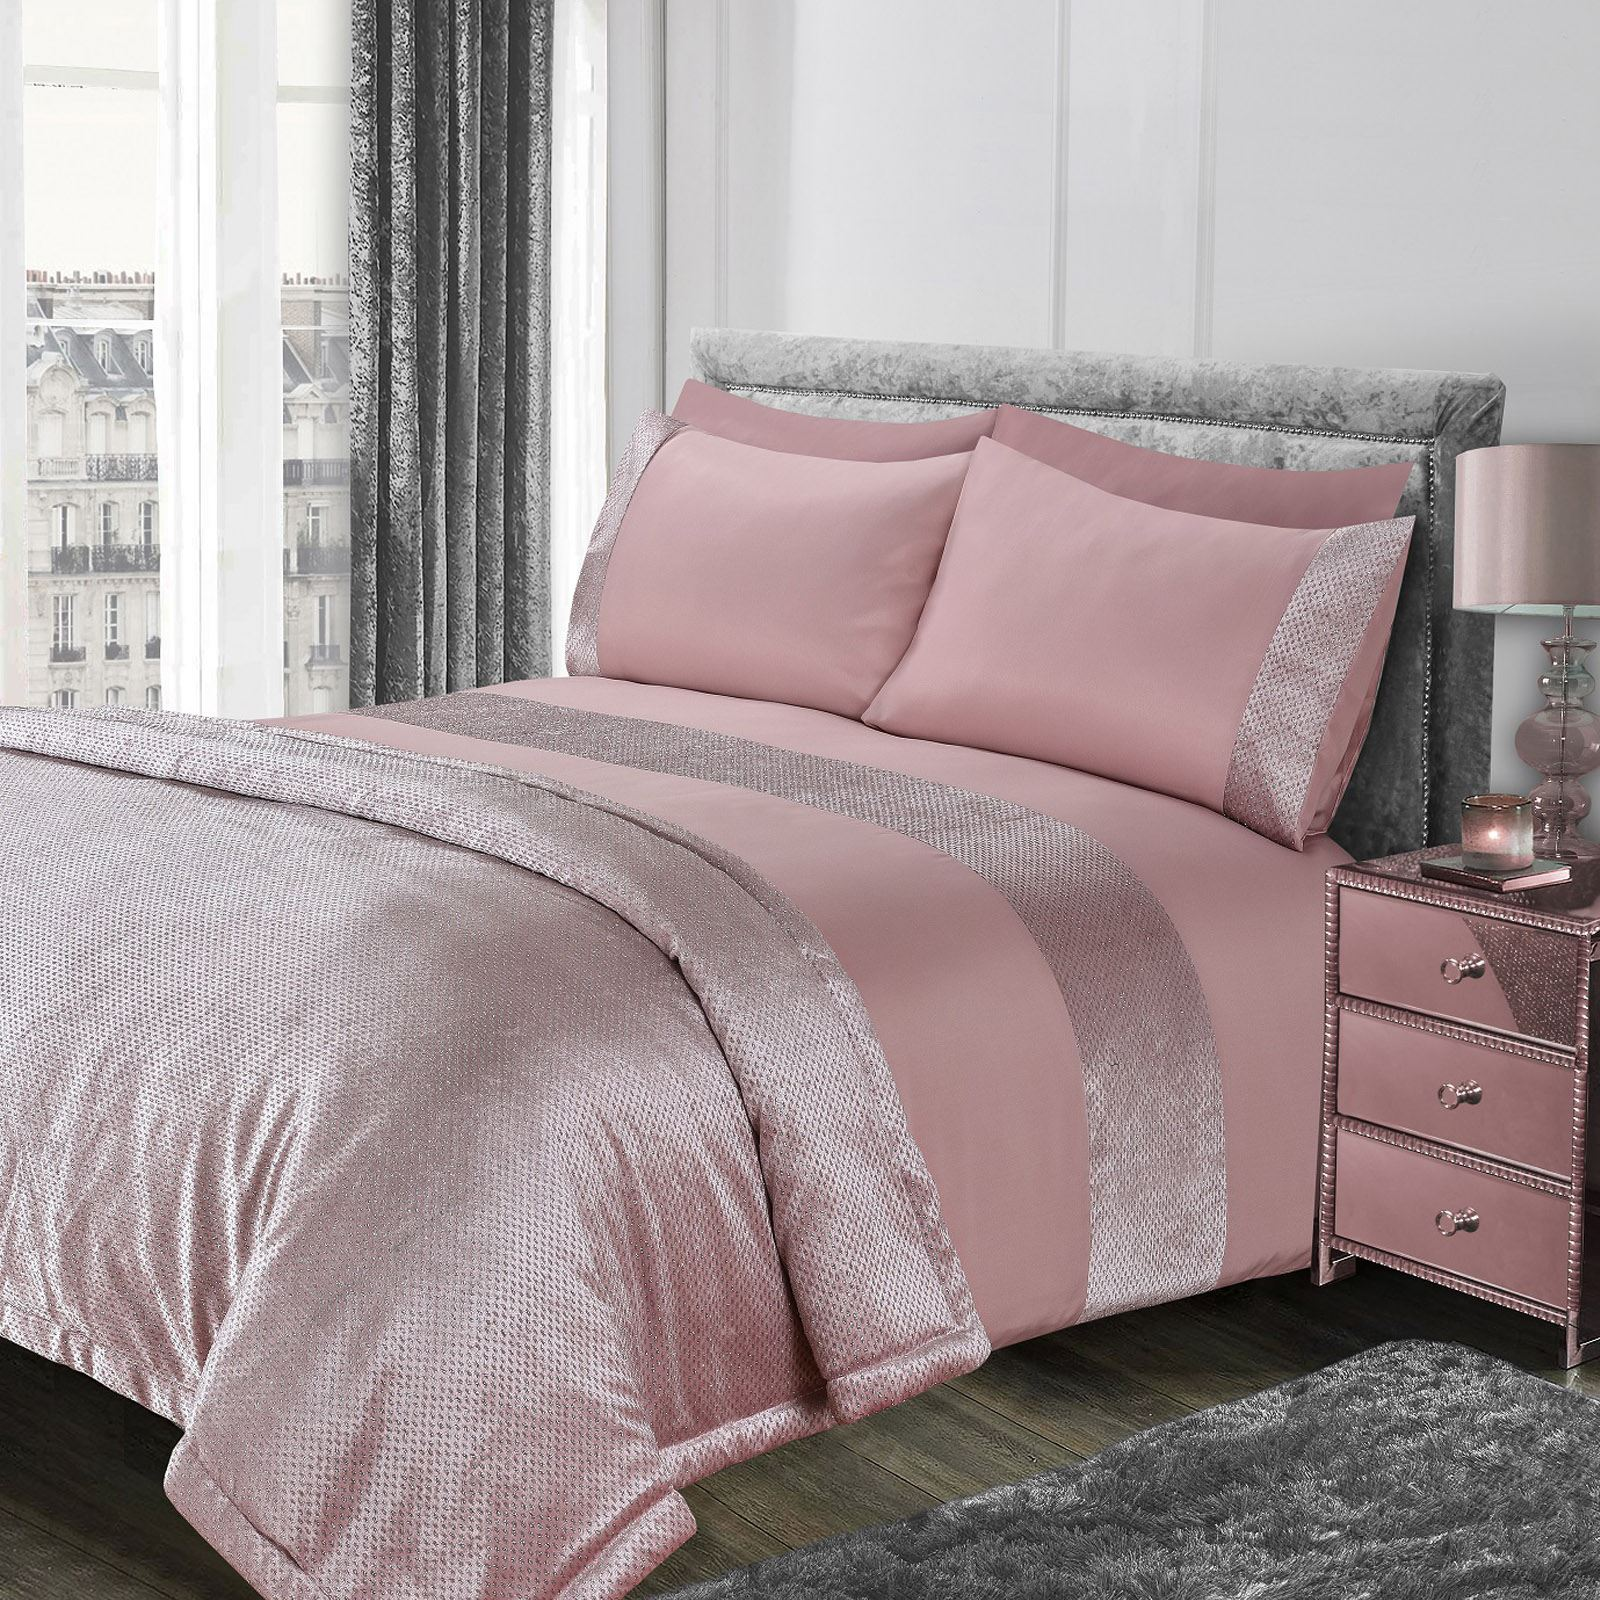 Sienna-Glitter-Duvet-Cover-with-Pillow-Case-Sparkle-Velvet-Bedding-Set-Grey-Pink thumbnail 7